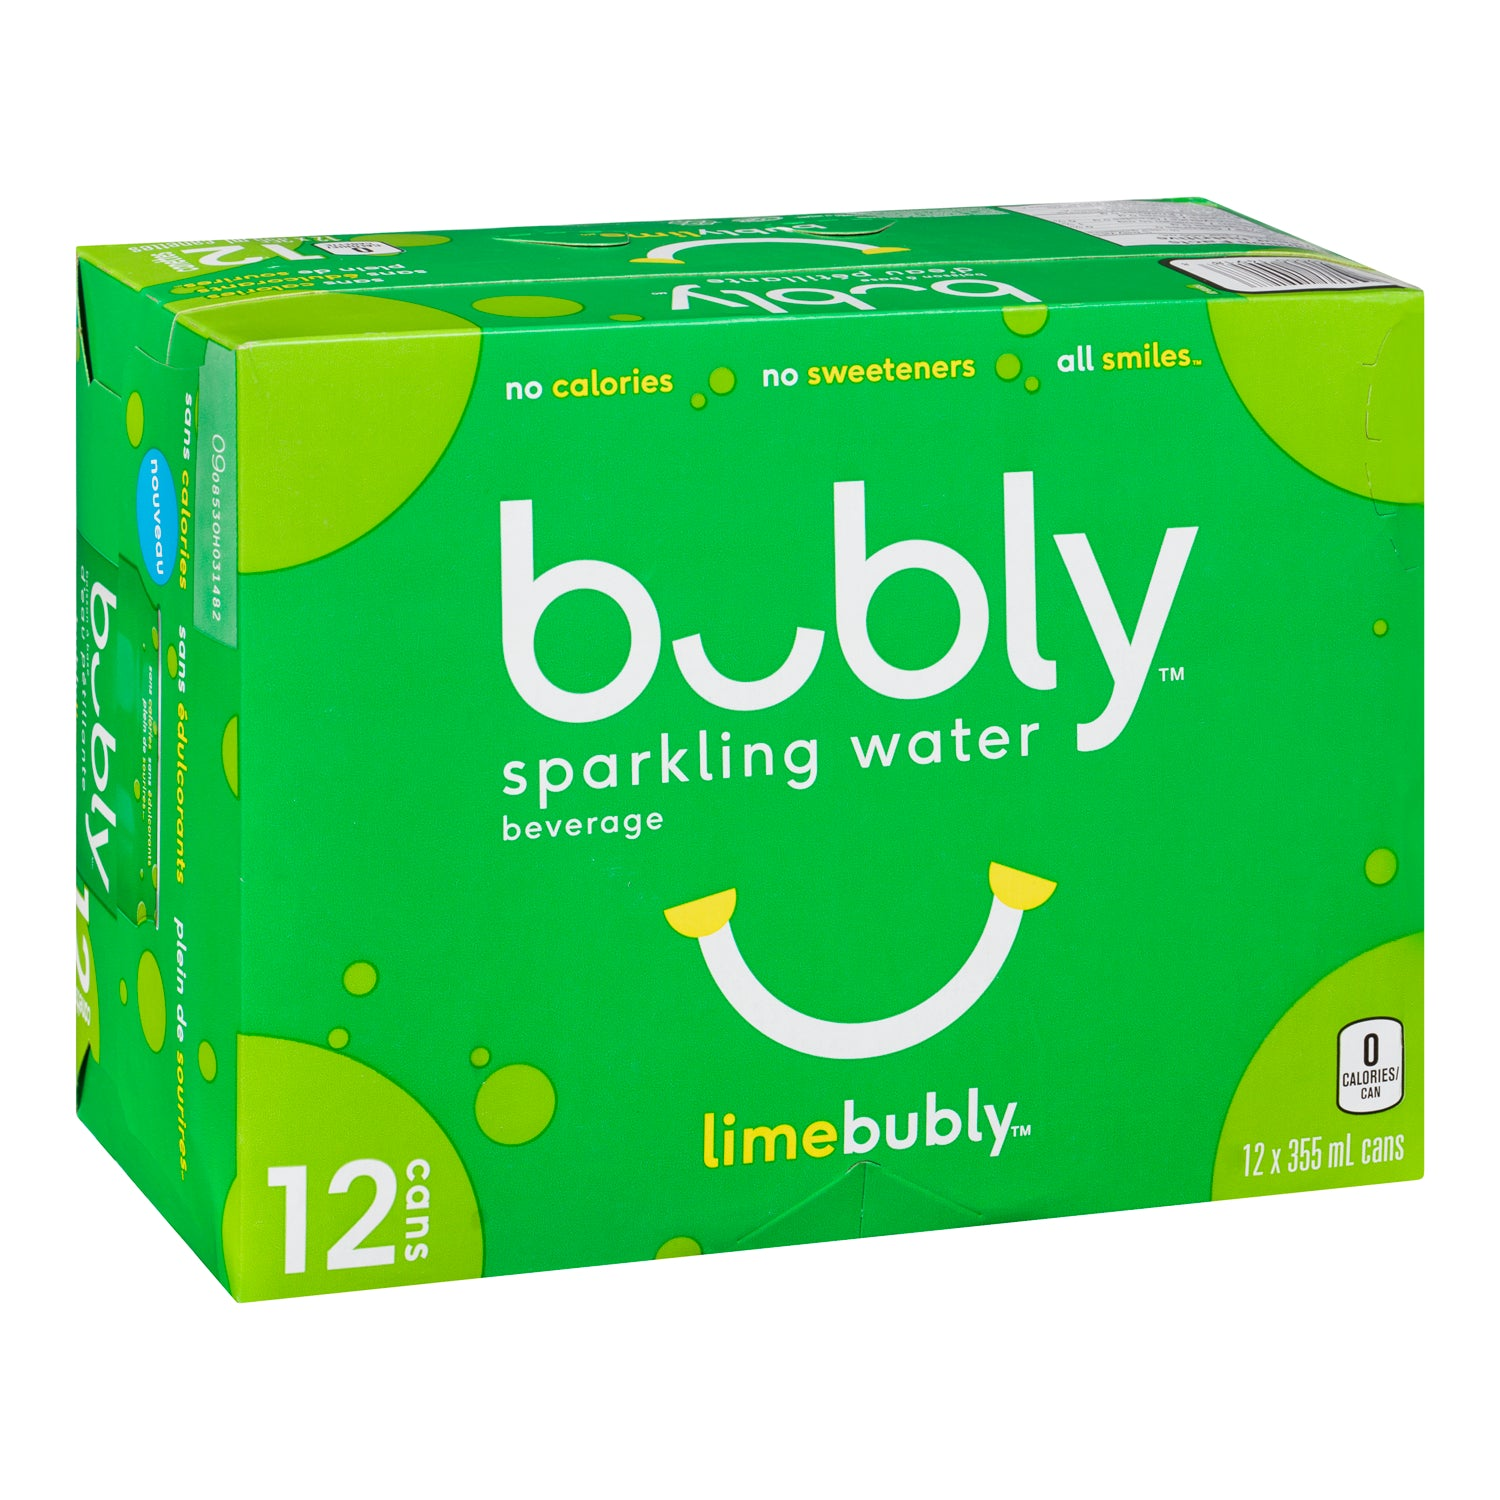 Bubly Lime Flavoured Sparkling Water 12 oz - 12 Pack [$0.44/can]